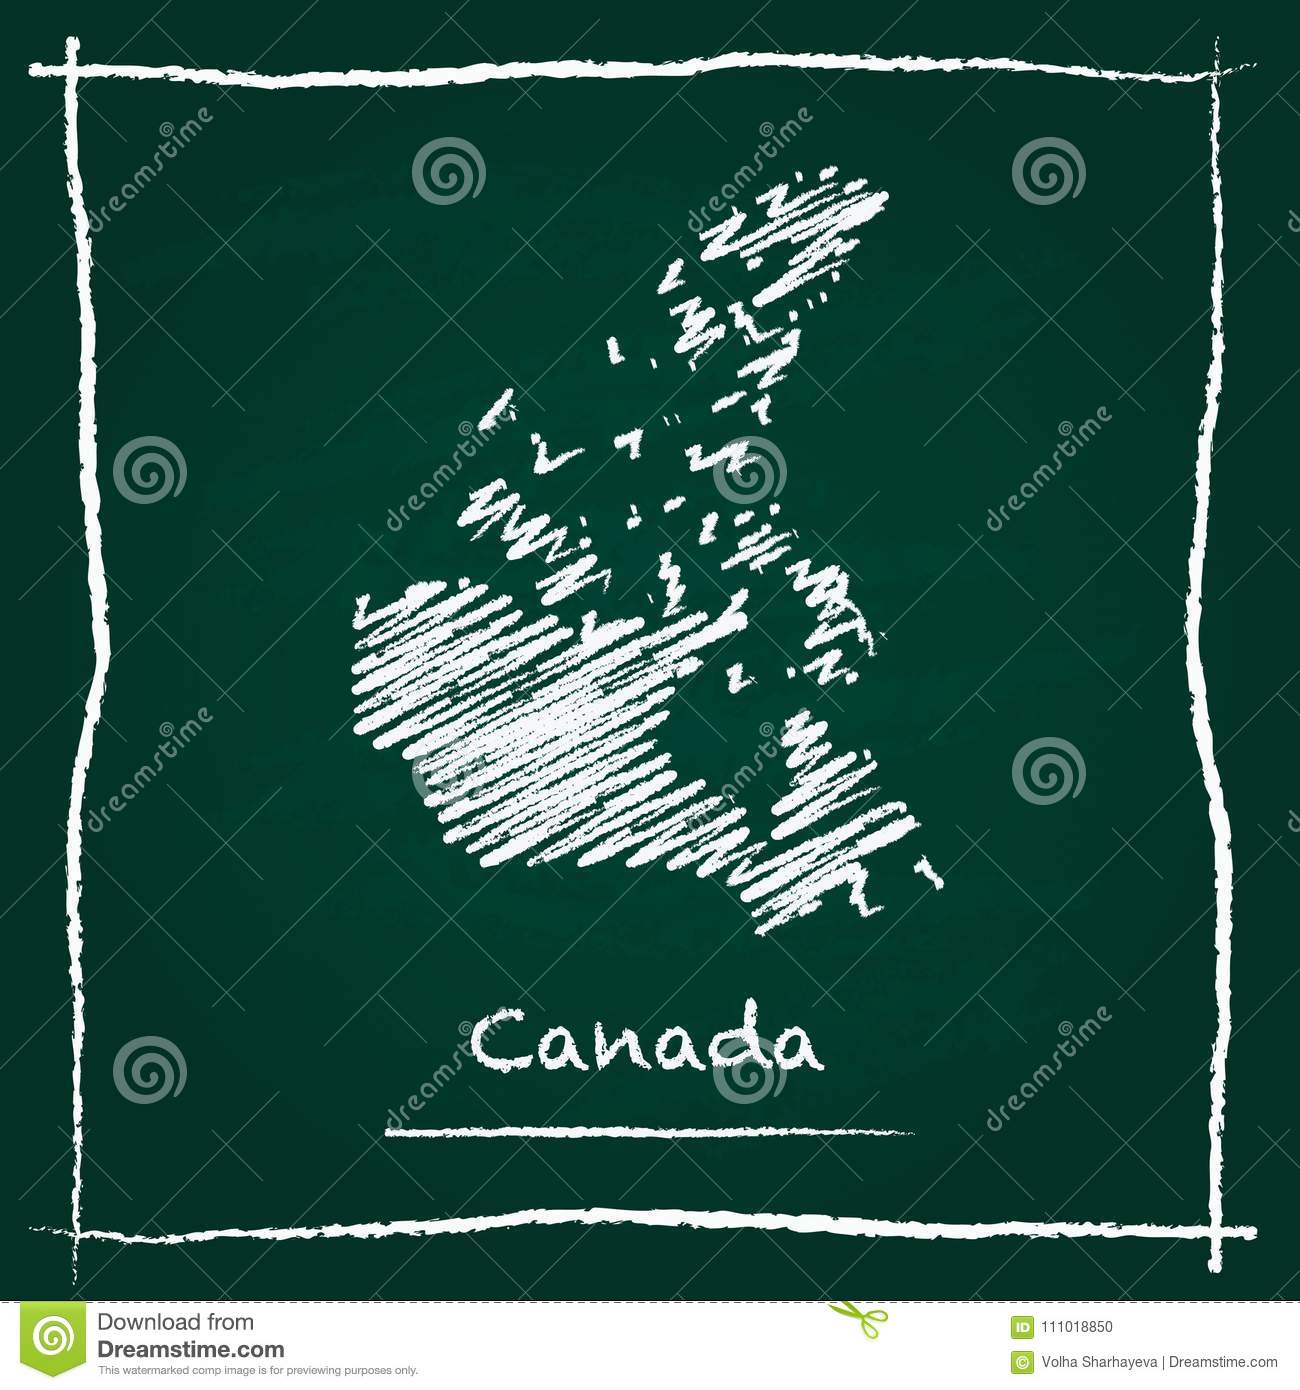 Canada Outline Vector Map Hand Drawn With Chalk. Stock ... on mission college map, mississippi college map, central college map, ri college map, hartnell college map, waterloo college map, elca college map, university of toronto college map, landmark college map, midland college map, merritt college map, california college map, college of the desert map, modesto jr college map, richmond college map, college of the canyons map, hope college map, delta college map, ct college map, canada home,